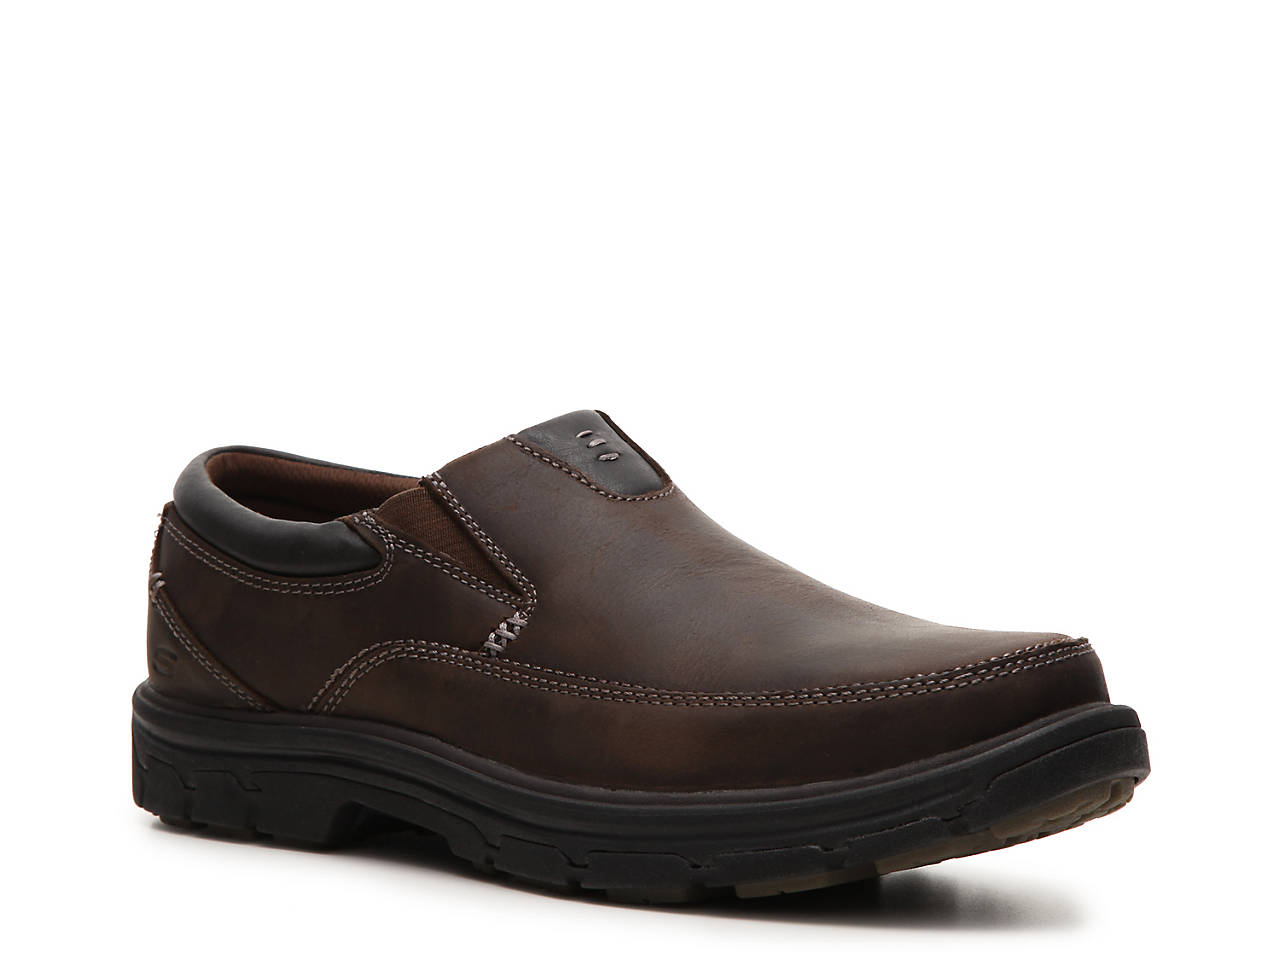 524ceaf3b Skechers Relaxed Fit The Search Slip-On Men's Shoes | DSW